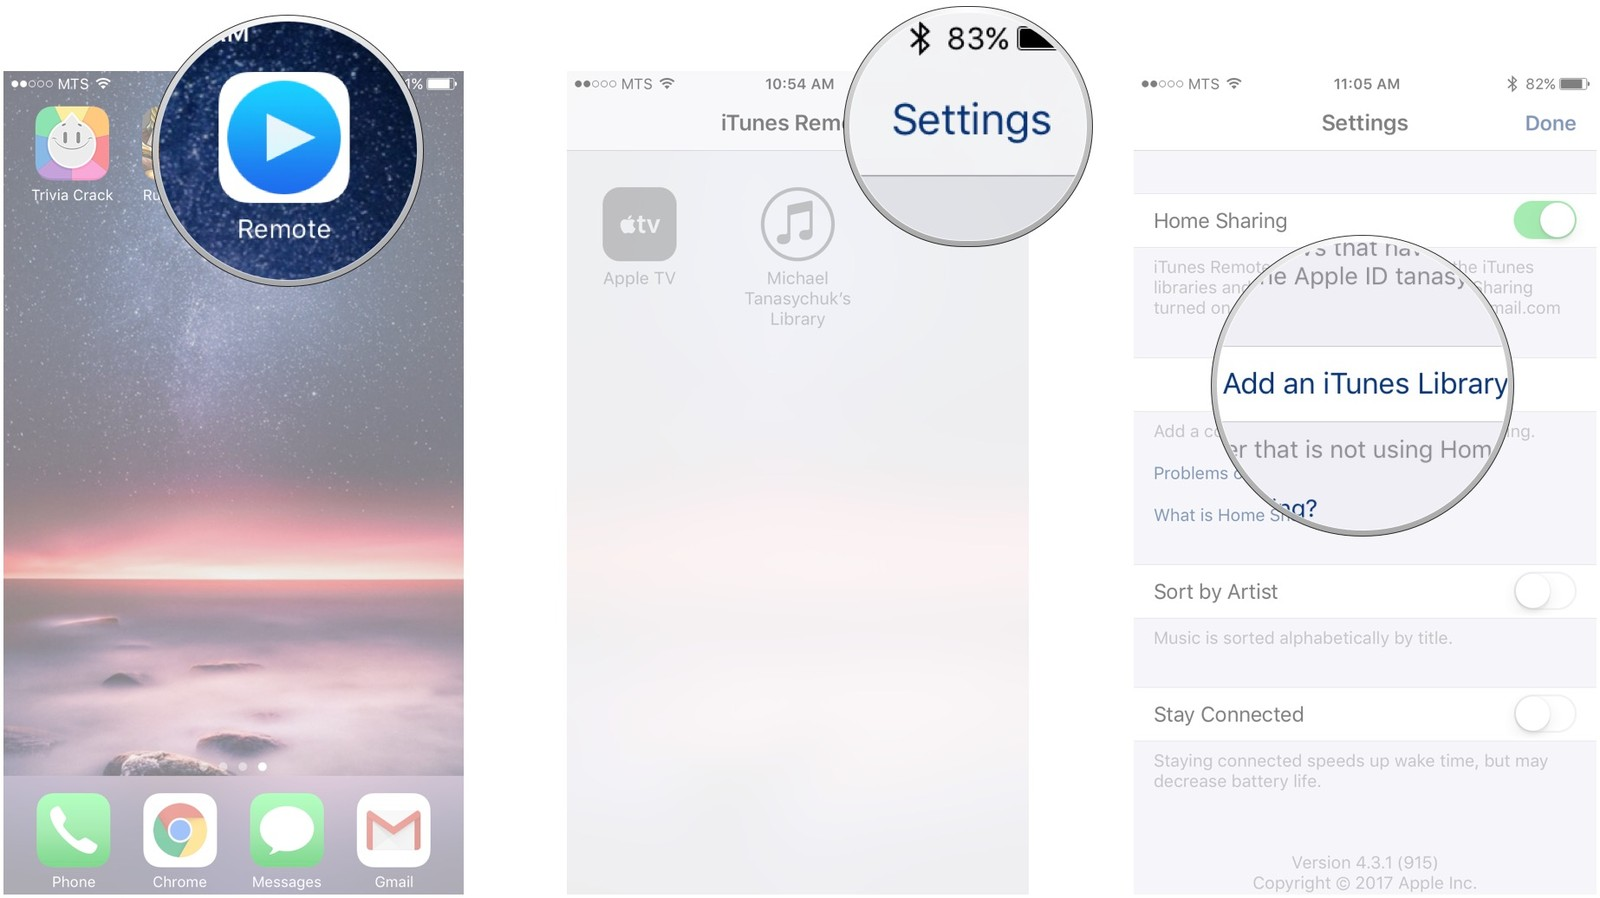 Launch Remote, tap Settings, tap Add an iTunes Library